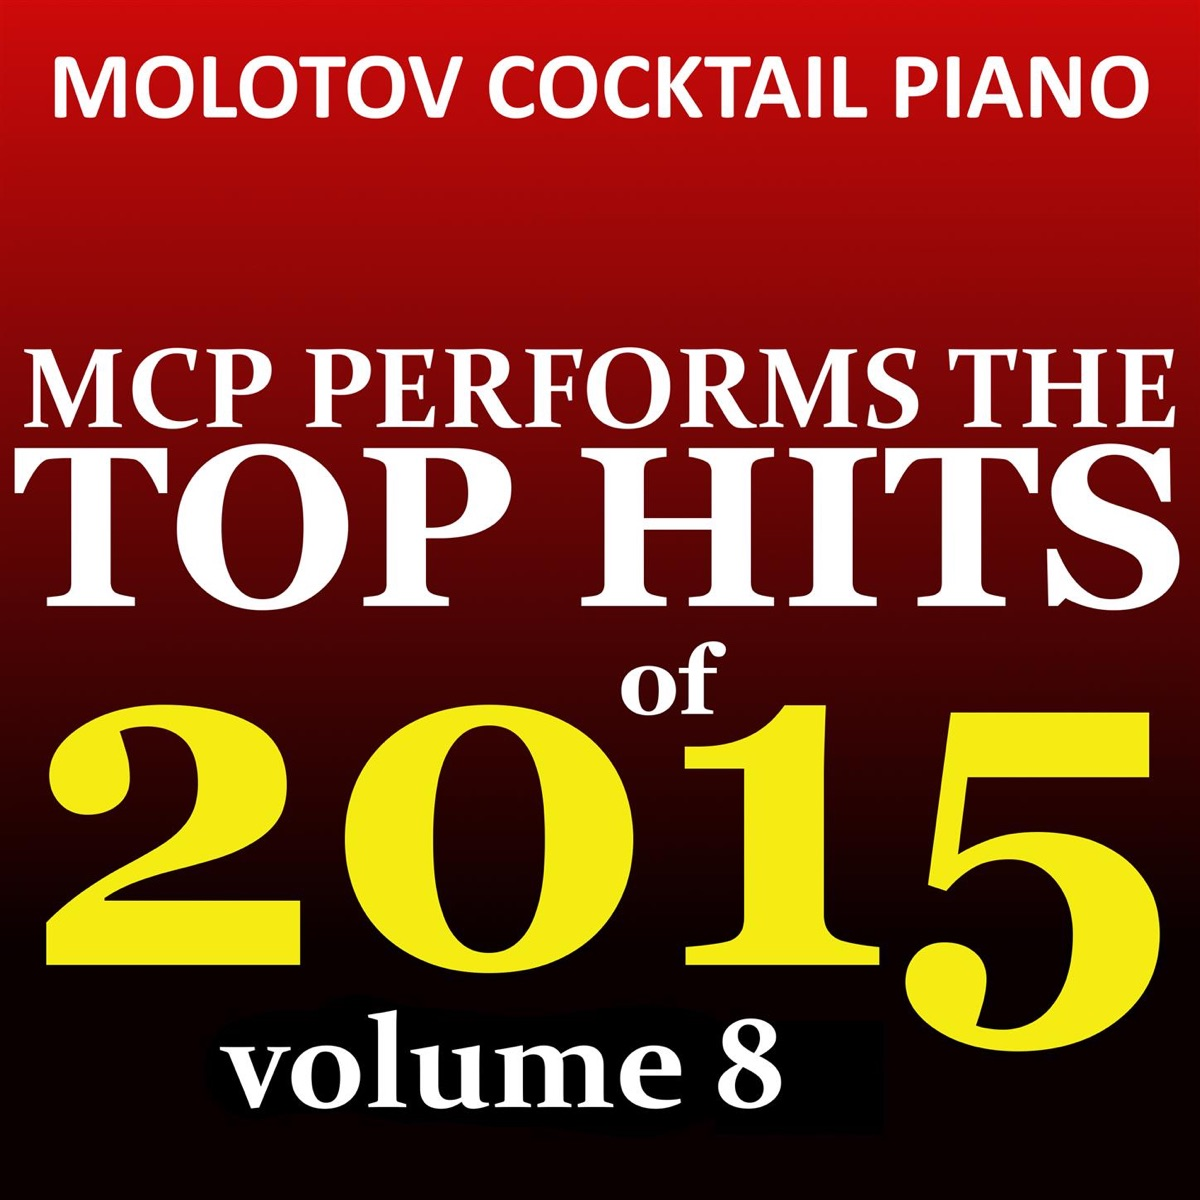 Top Hits of 2015 Vol 8 Molotov Cocktail Piano CD cover